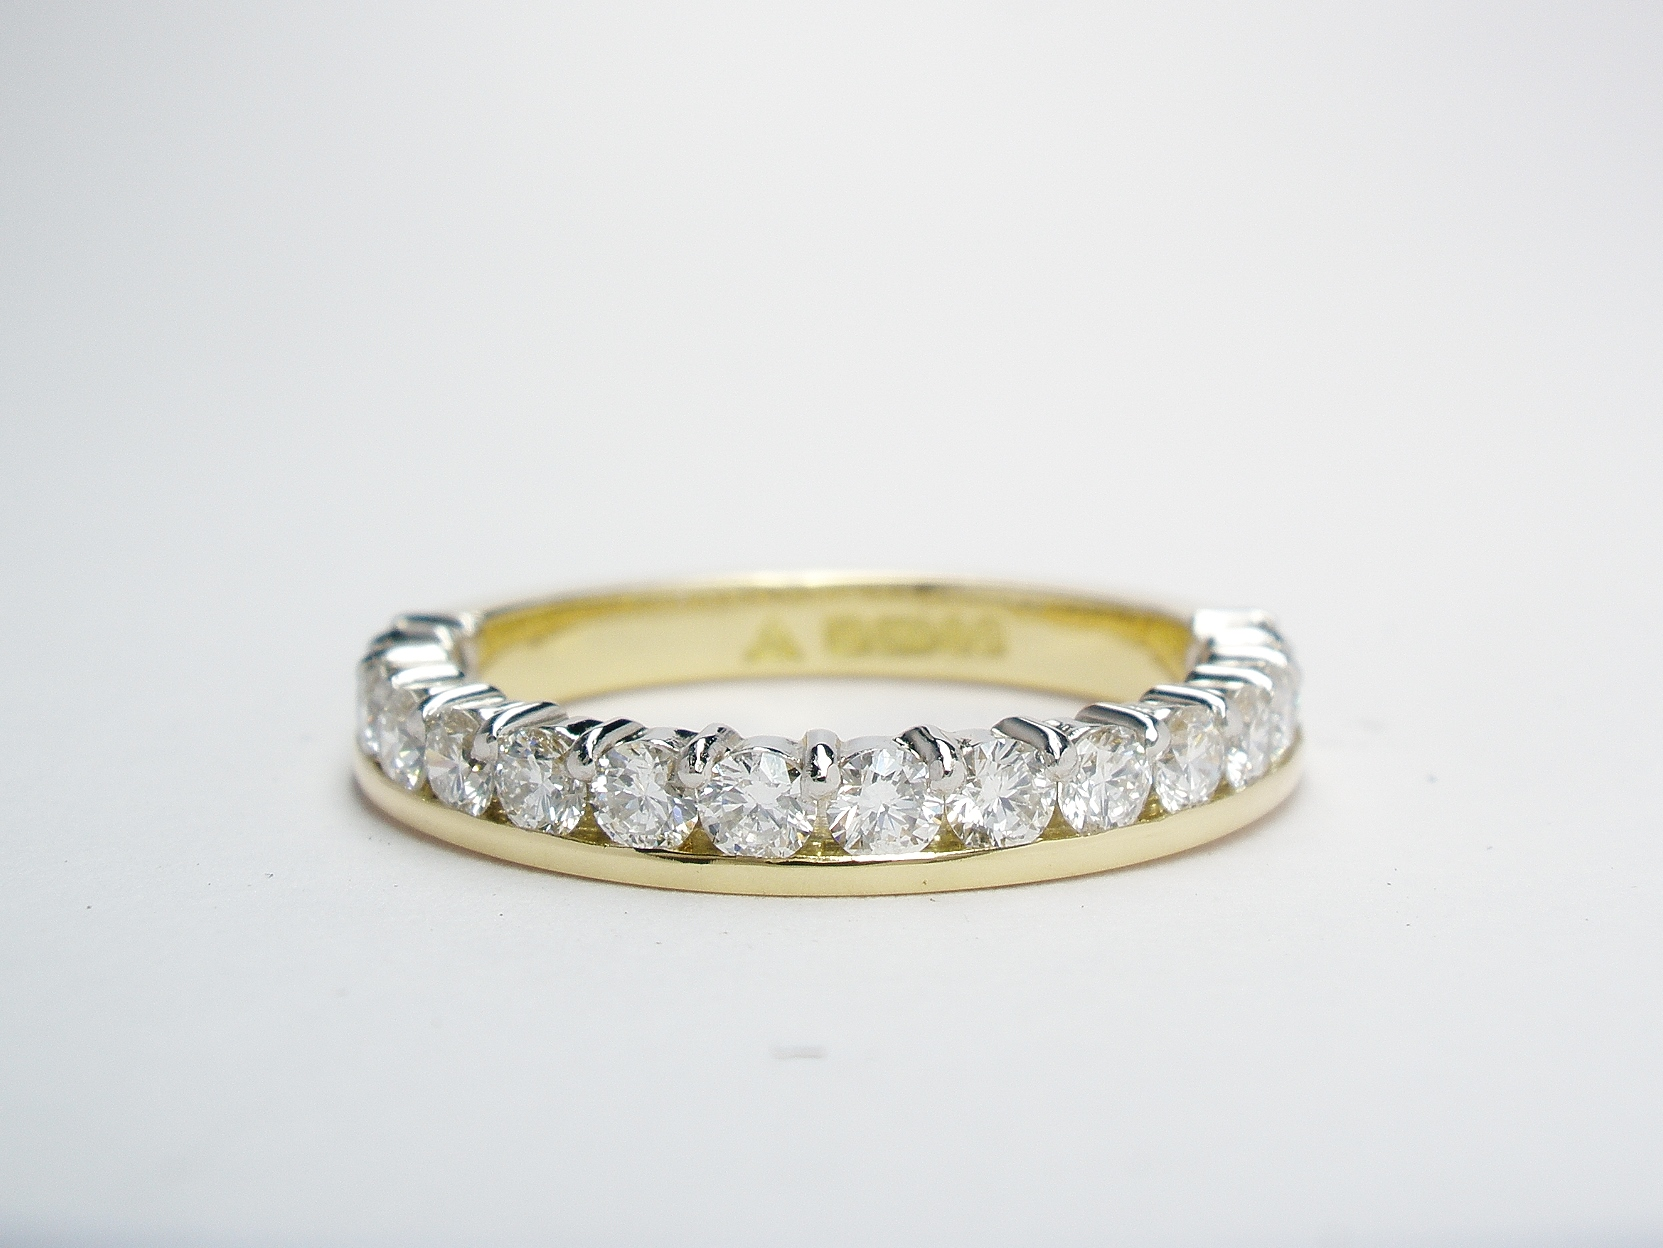 Round brilliant cut diamond eternity ring part channel set to 55% cover, mounted in 18ct. yellow gold and platinum